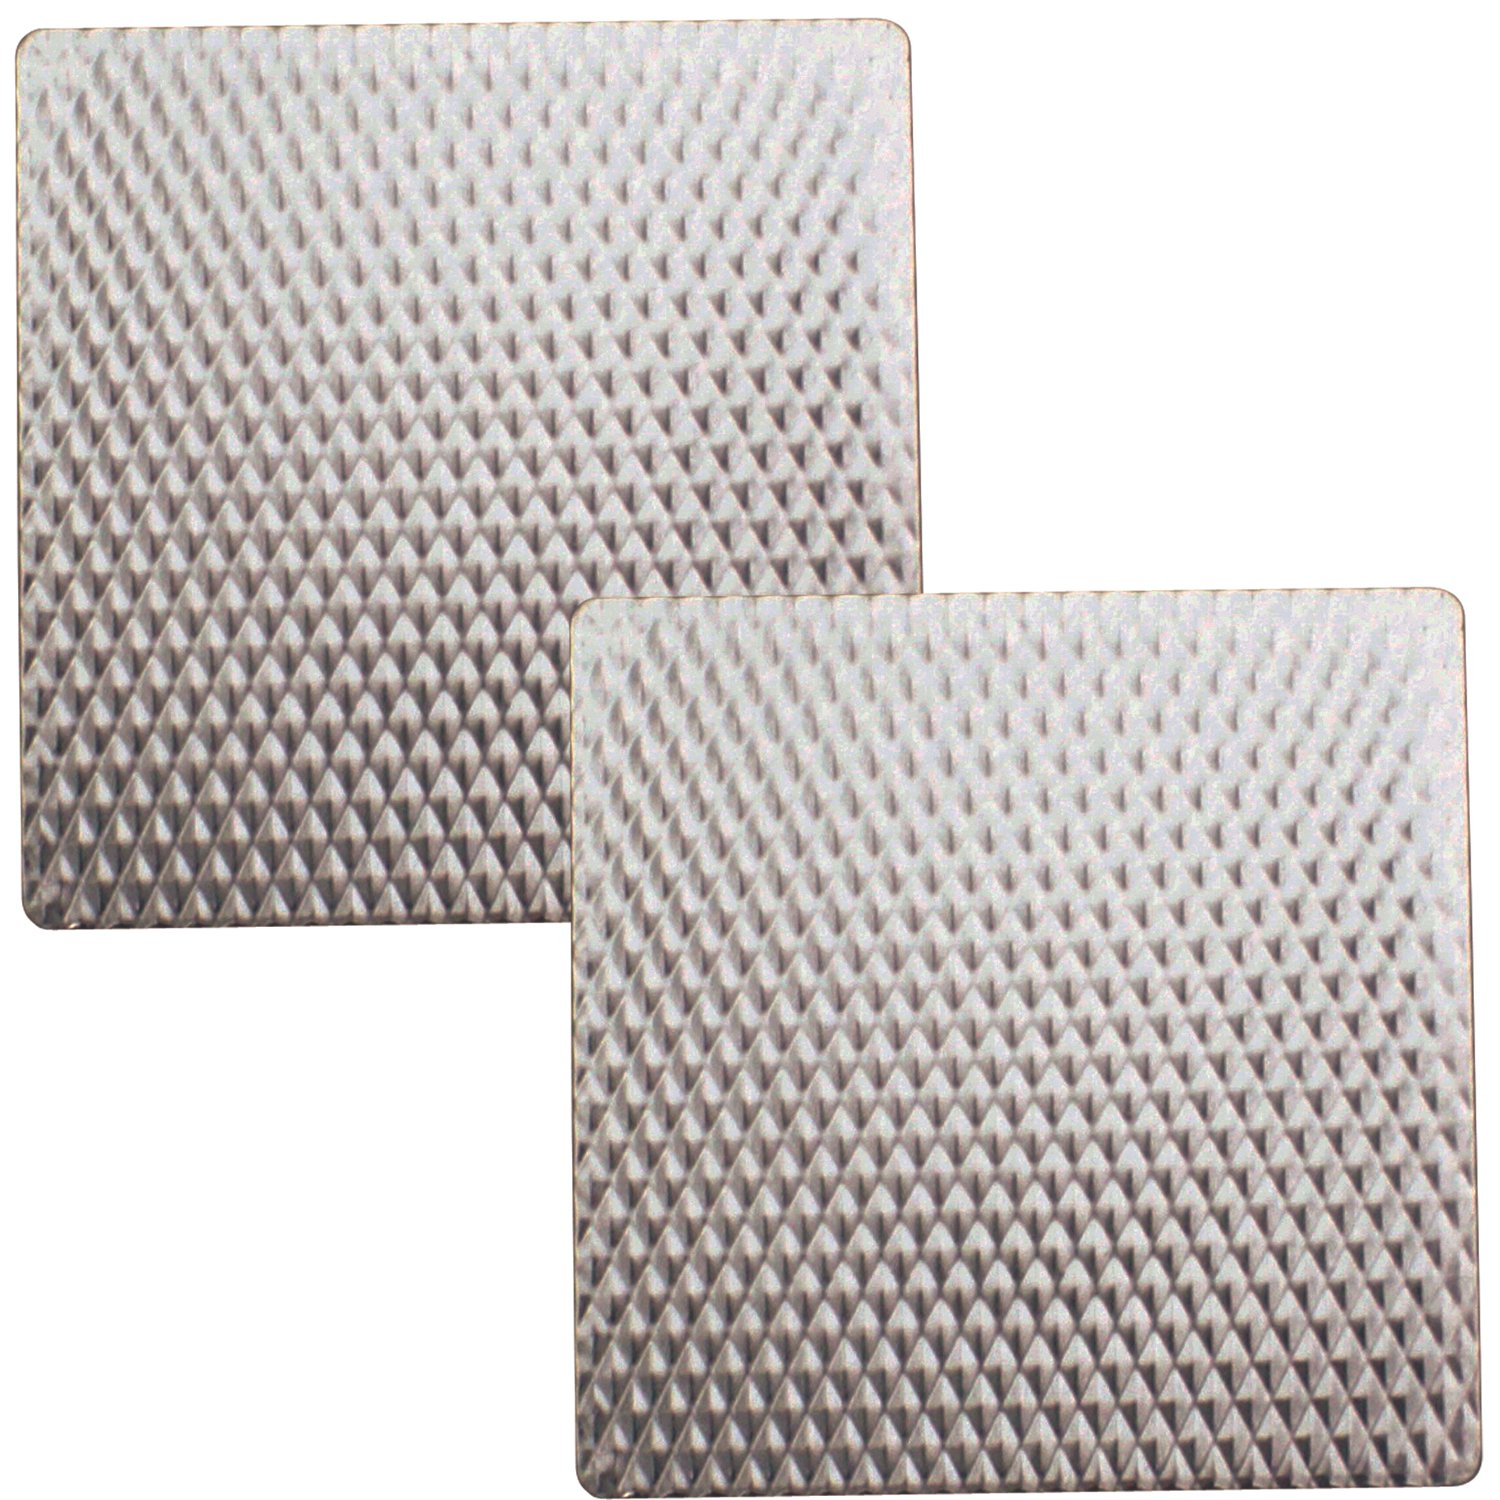 Range Kleen SilverWare Hot Pad Set of 2